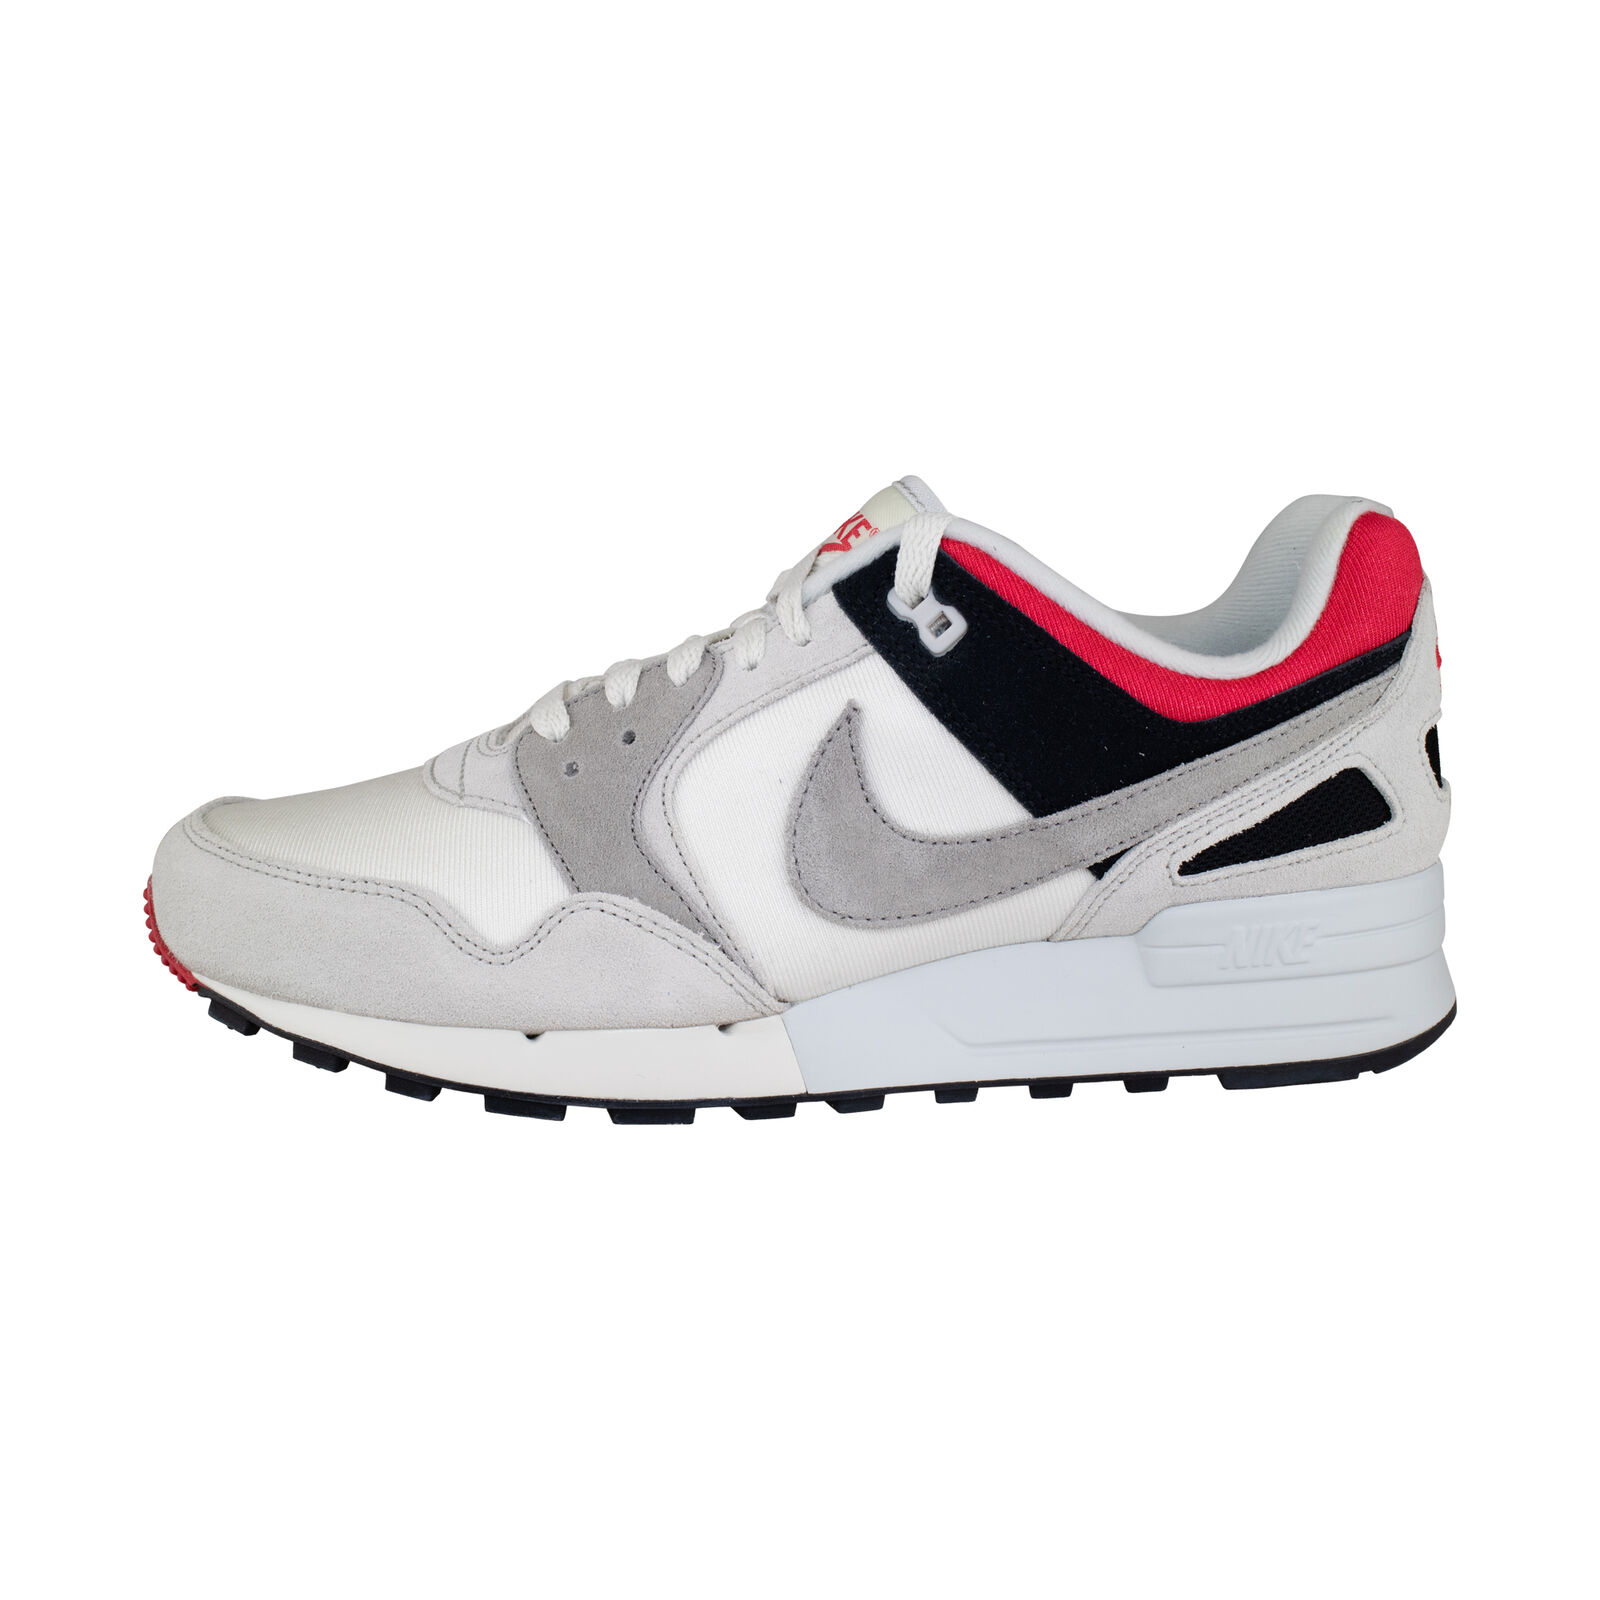 Details about Nike Air pegasus 89 Se Grey/Red Men's Training Shoes Trainers  CI6396-100